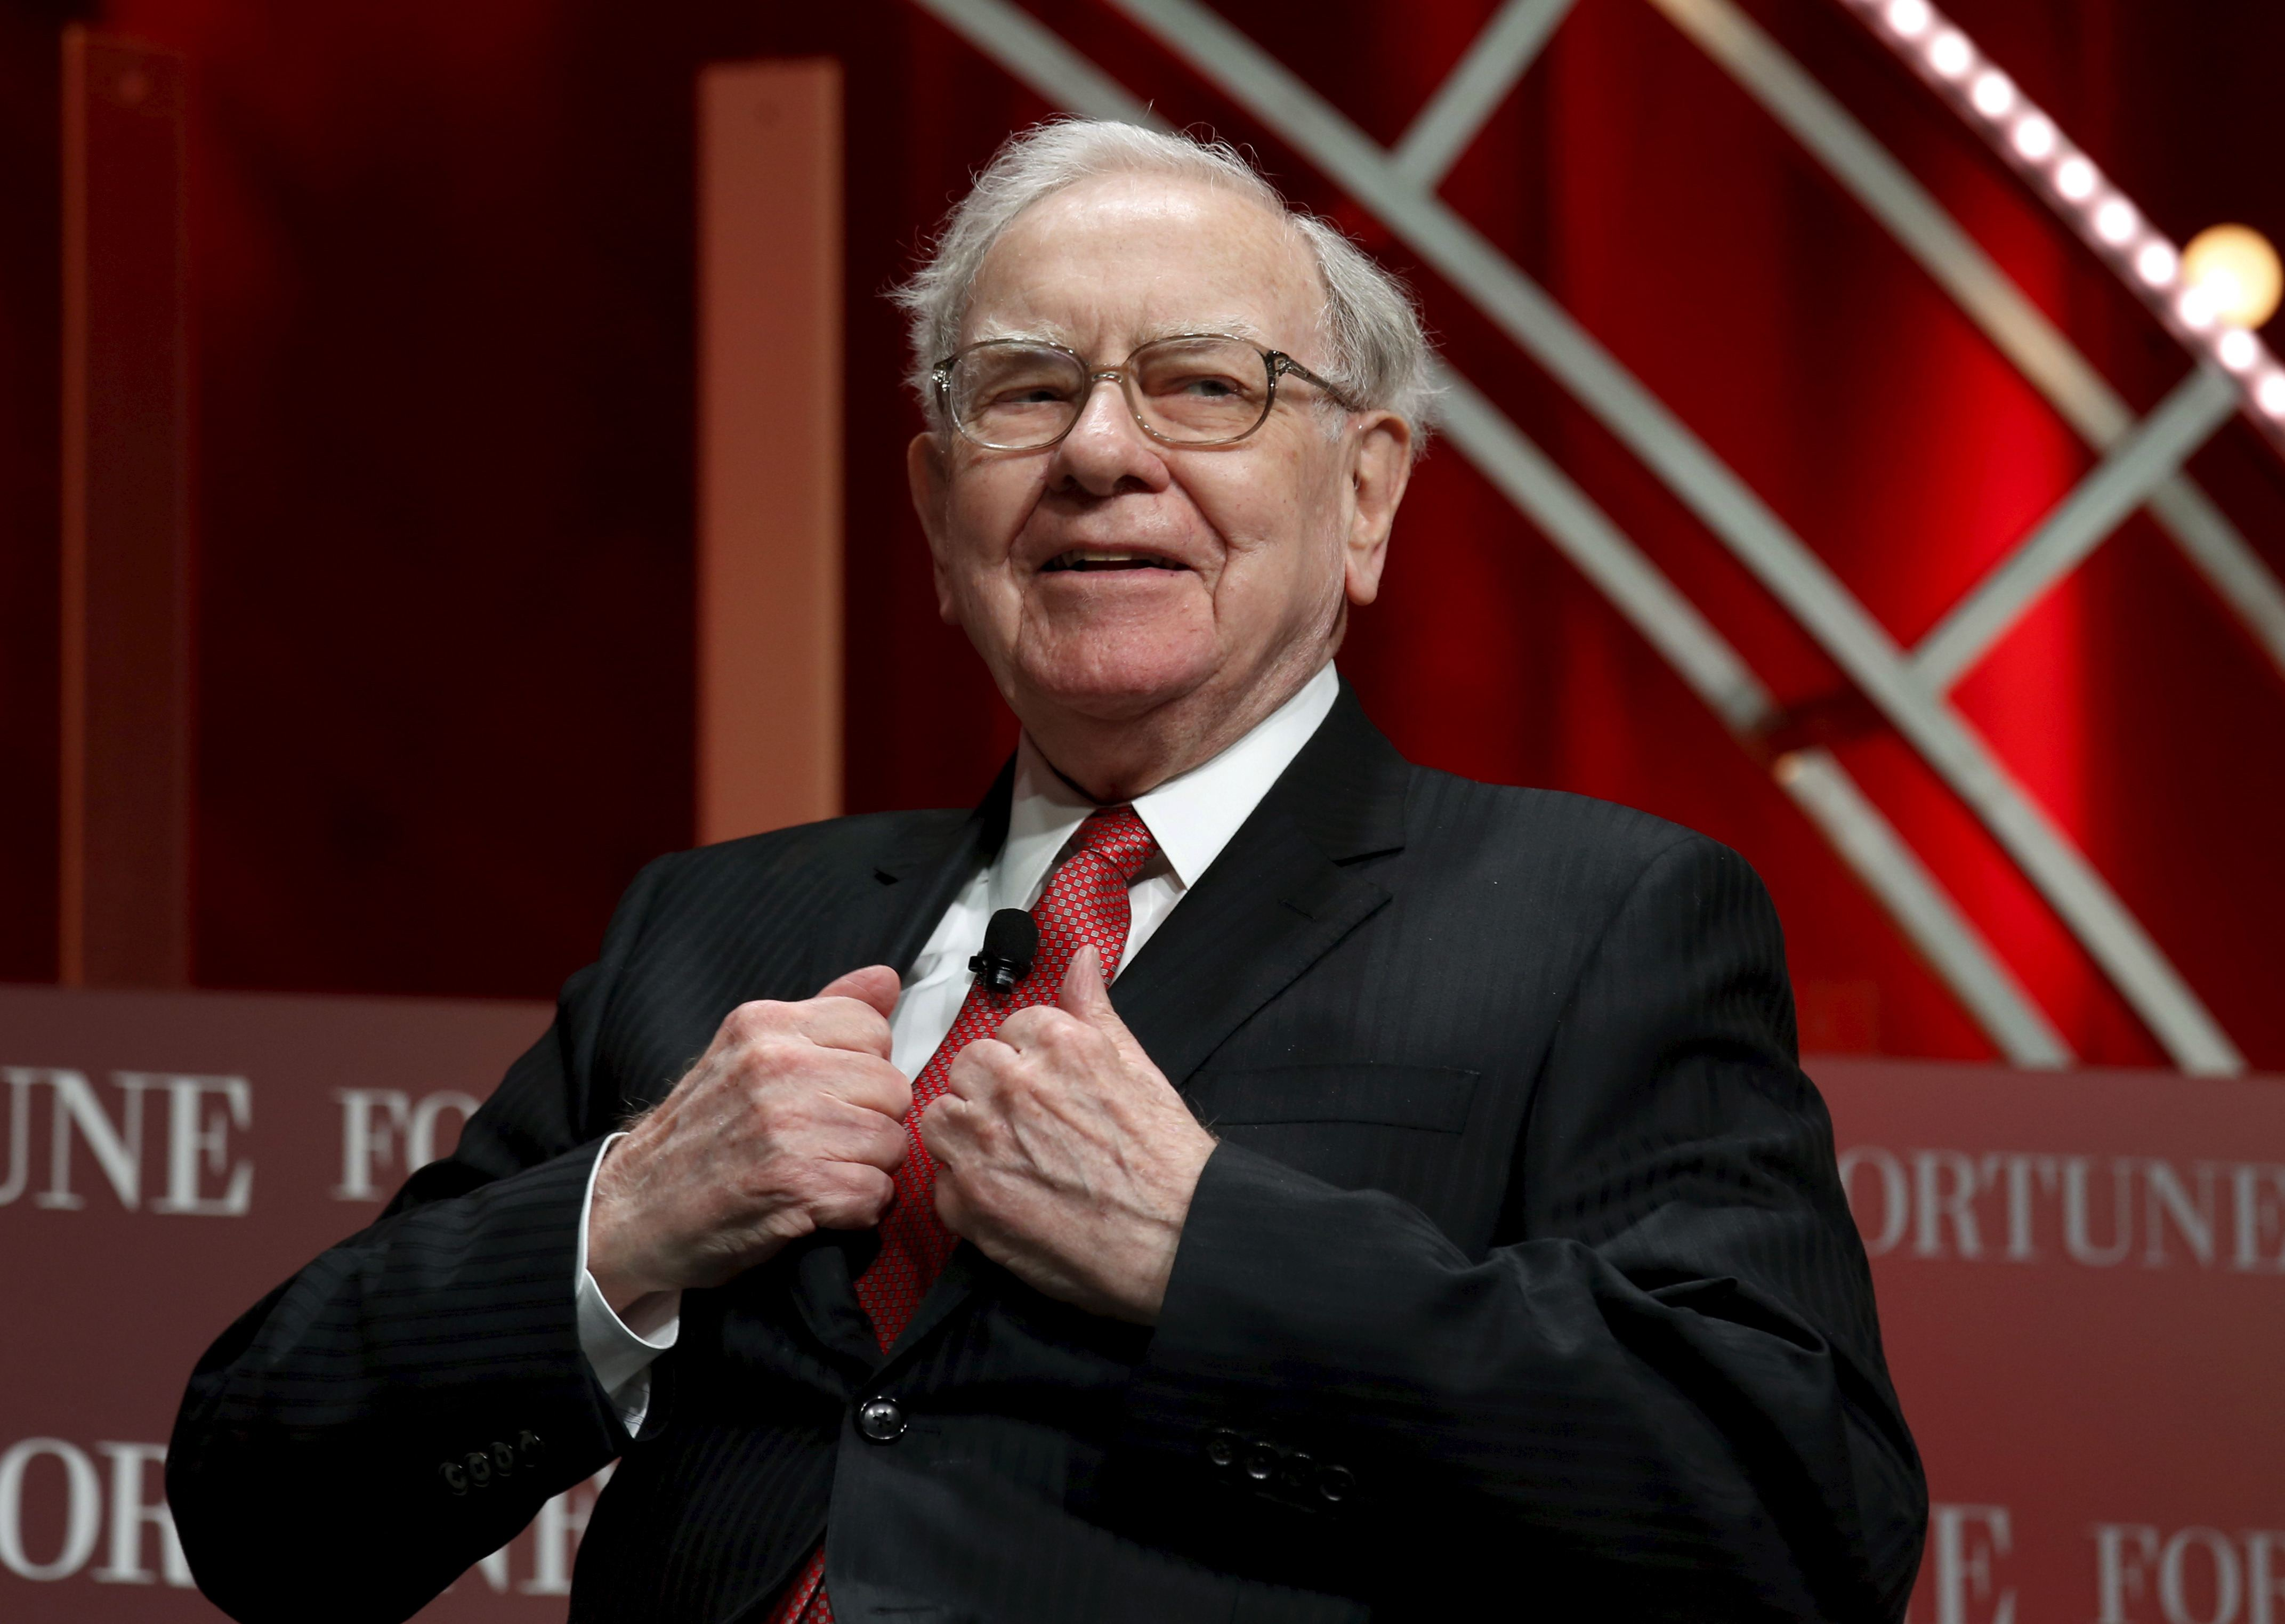 14 Things That Might Surprise You About Warren Buffett | The Fiscal Times